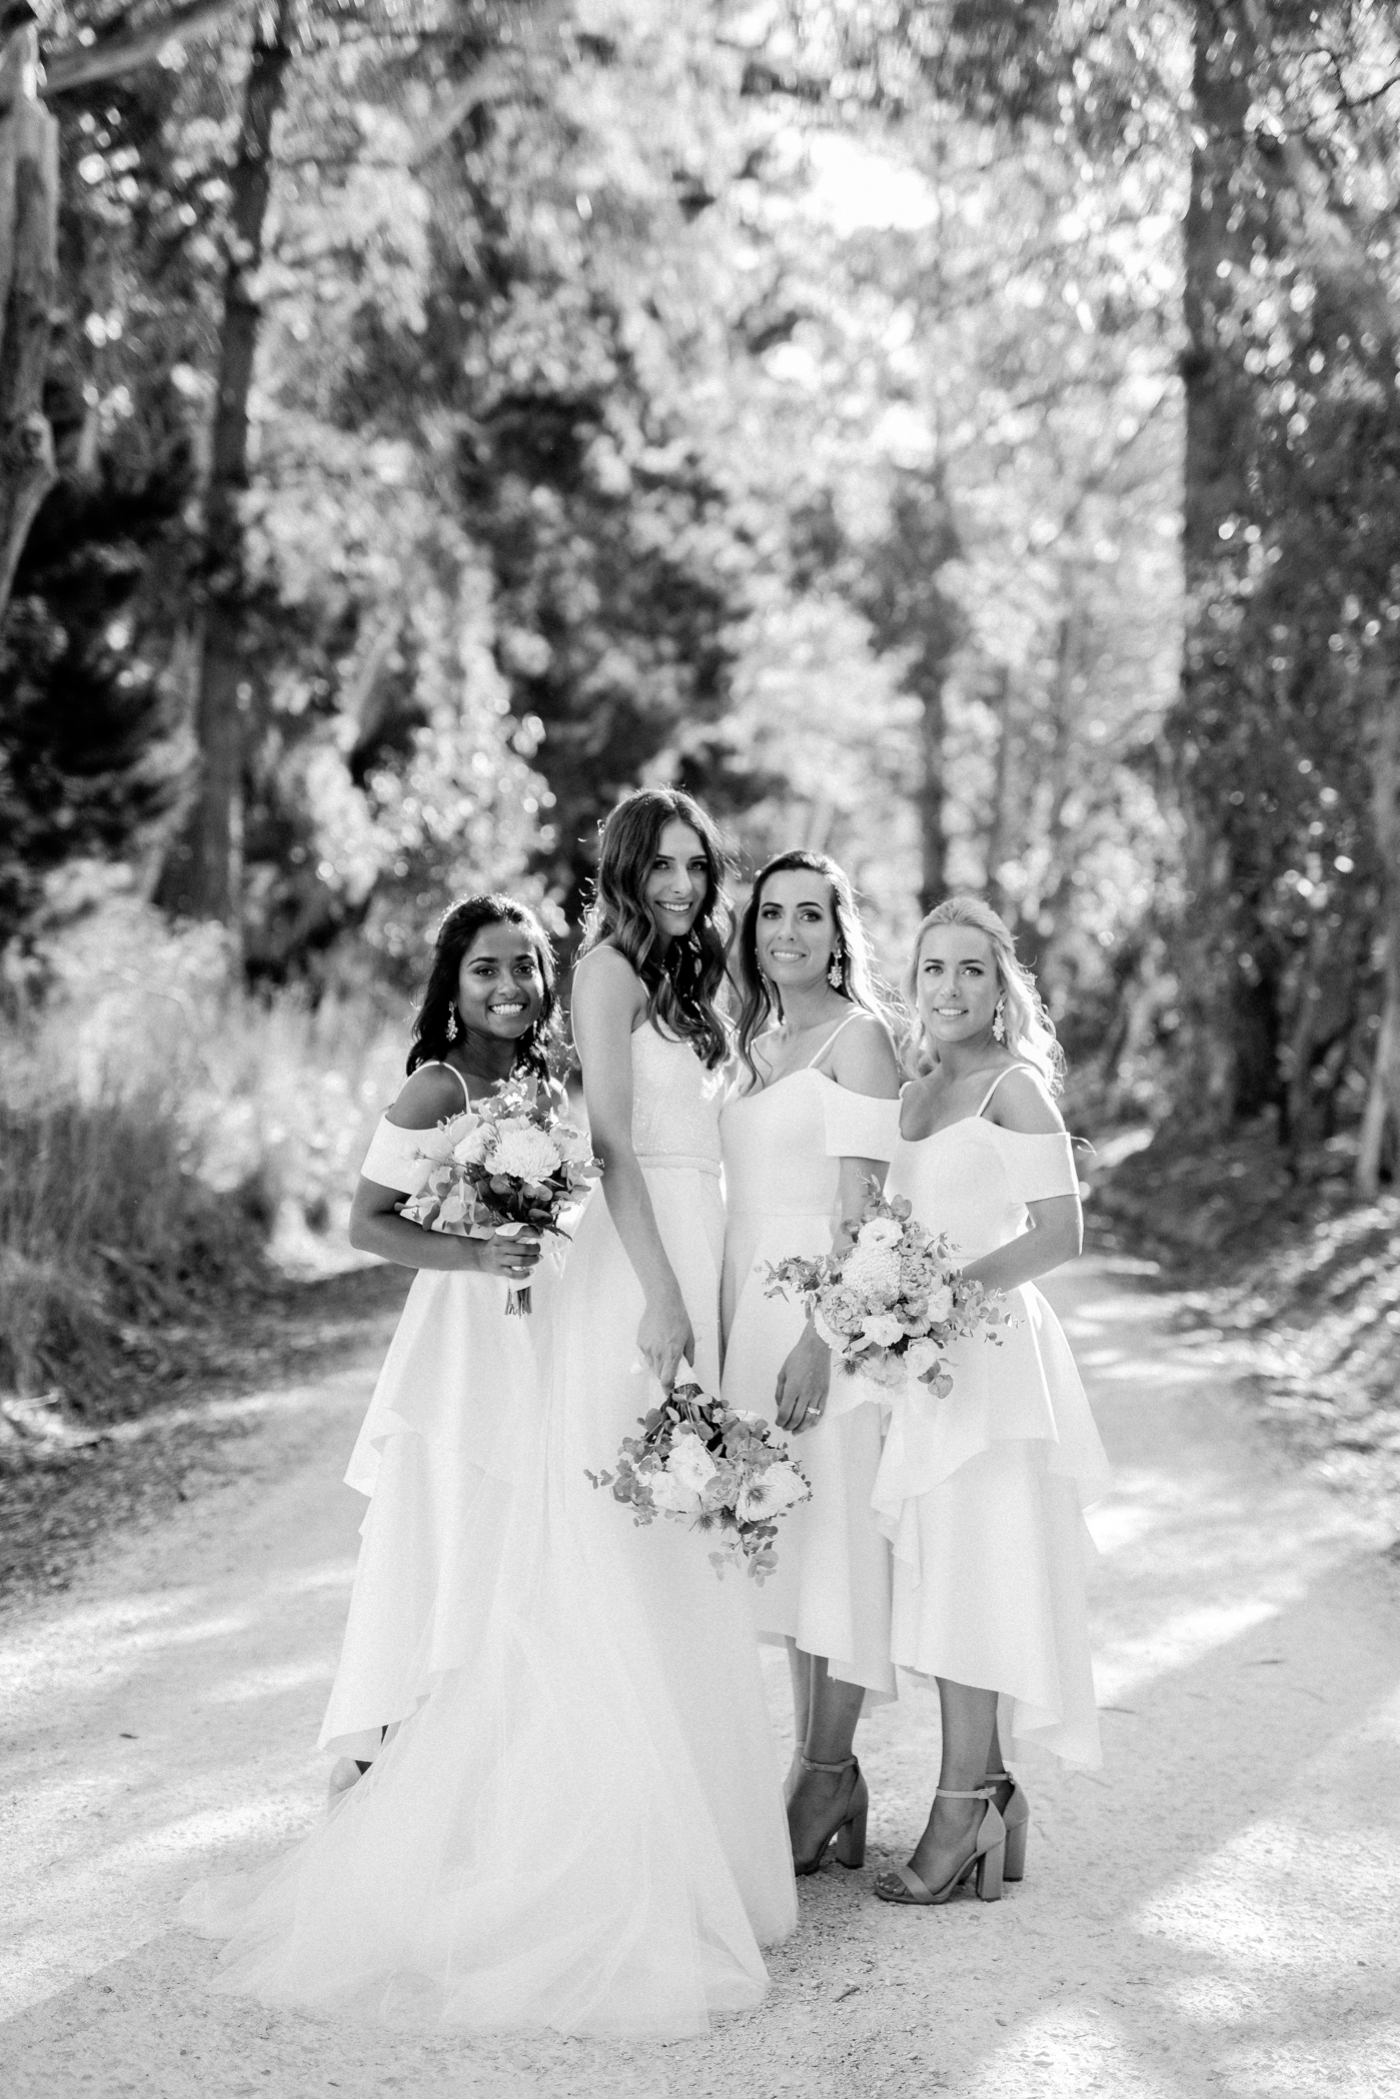 Steph & Quinn - Natural Wedding Photographer in Adelaide - Beautiful Wedding Photography - Simple, modern and natural wedding photographer - Katherine Schultz - www.katherineschultzphotography.com_0037.jpg